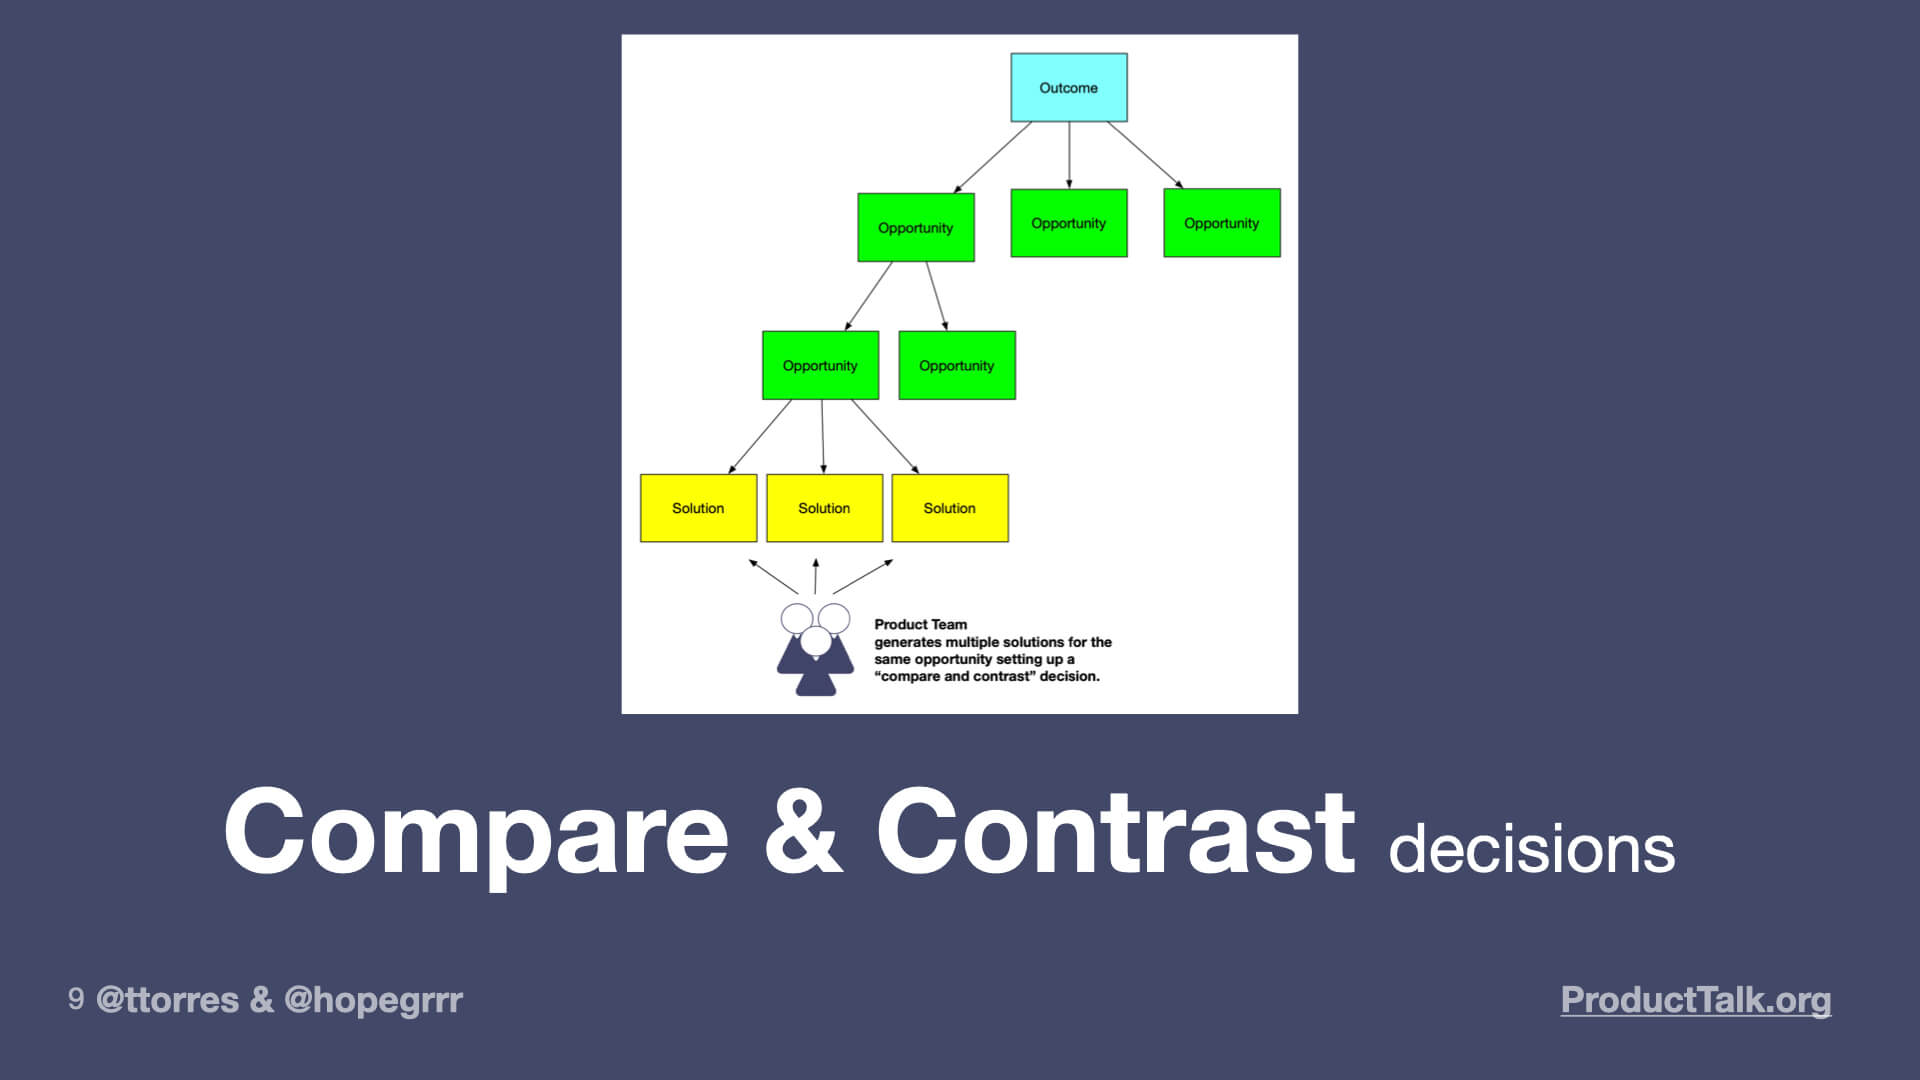 """A diagram of an opportunity solution tree with an outcome at the top branching off into several opportunities, which, in turn, branch into several solutions. A product team is considering each of the solutions. The image is labeled """"Compare and contrast decisions."""""""